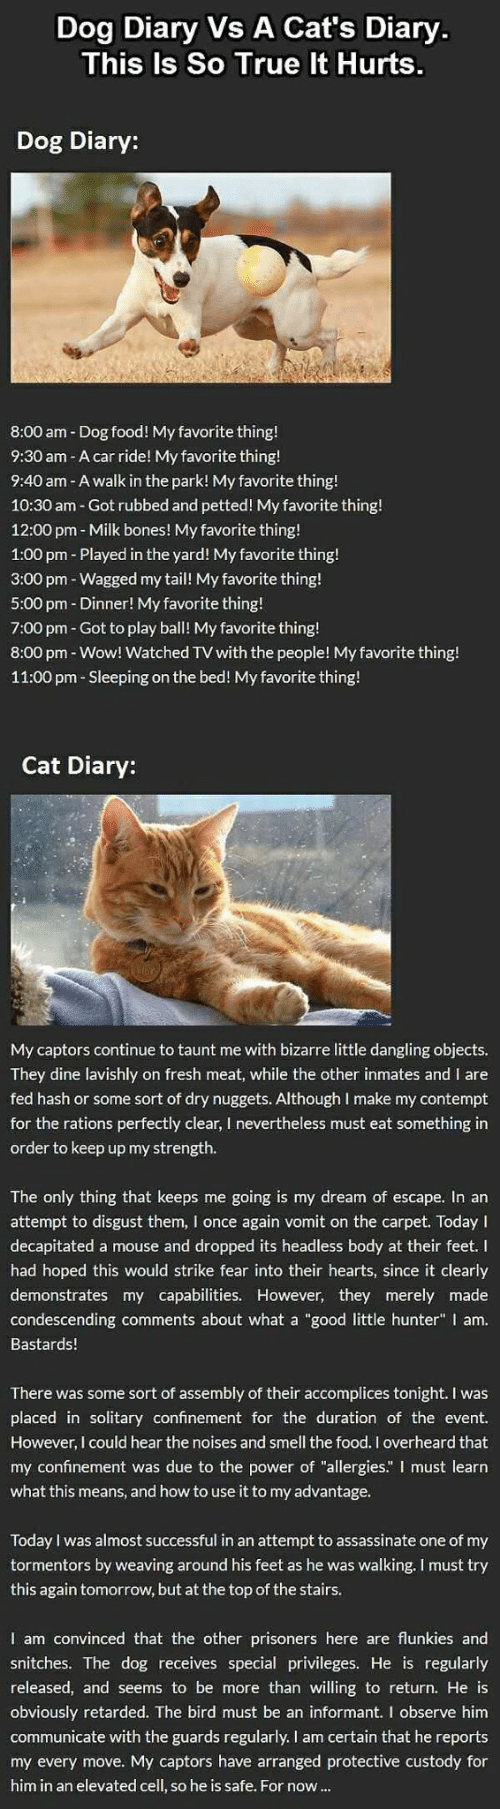 """Bones, Cats, and Food: Dog Diary Vs A Cat's Diary.  This  Is So True It Hurts.  Dog Diary:  8:00 am Dog food! My favorite thing!  9:30 am - A car ride! My favorite thing!  9:40 am - A walk in the park! My favorite thing!  10:30 am - Got rubbed and petted! My favorite thing!  12:00 pm Milk bones! My favorite thing!  1:00 pm - Played in the yard! My favorite thing!  3:00 pm - Wagged my tail! My favorite thing!  5:00 pm - Dinner! My favorite thing!  7:00 pm Got to play ball! My favorite thing!  8:00 pm - Wow! Watched TV with the people! My favorite thing!  11:00 pm- Sleeping on the bed! My favorite thing!  Cat Diary:  My captors continue to taunt me with bizarre little dangling objects.  They dine lavishly on fresh meat, while the other inmates and I are  fed hash or some sort of dry nuggets. Although l make my contempt  for the rations perfectly clear, I nevertheless must eat something in  order to keep up my strength.  The only thing that keeps me going is my dream of escape. In an  attempt to disgust them, I once again vomit on the carpet. Today I  decapitated a mouse and dropped its headless body at their feet. I  had hoped this would strike fear into their hearts, since it clearly  demonstrates my capabilities. However, they merely made  condescending comments about what a """"good little hunter"""" I am.  Bastards!  There was some sort of assembly of their accomplices tonight. I was  placed in solitary confinement for the duration of the event  However, I could hear the noises and smell the food. I overheard that  my confinement was due to the power of """"allergies."""" I must learn  what this means, and how to use it to my advantage.  Today I was almost successful in an attempt to assassinate one of my  tormentors by weaving around his feet as he was walking. I must try  this again tomorrow, but at the top of the stairs.  I am convinced that the other prisoners here are flunkies and  snitches. The dog receives special privileges. He is regularly  released, and seems to be """